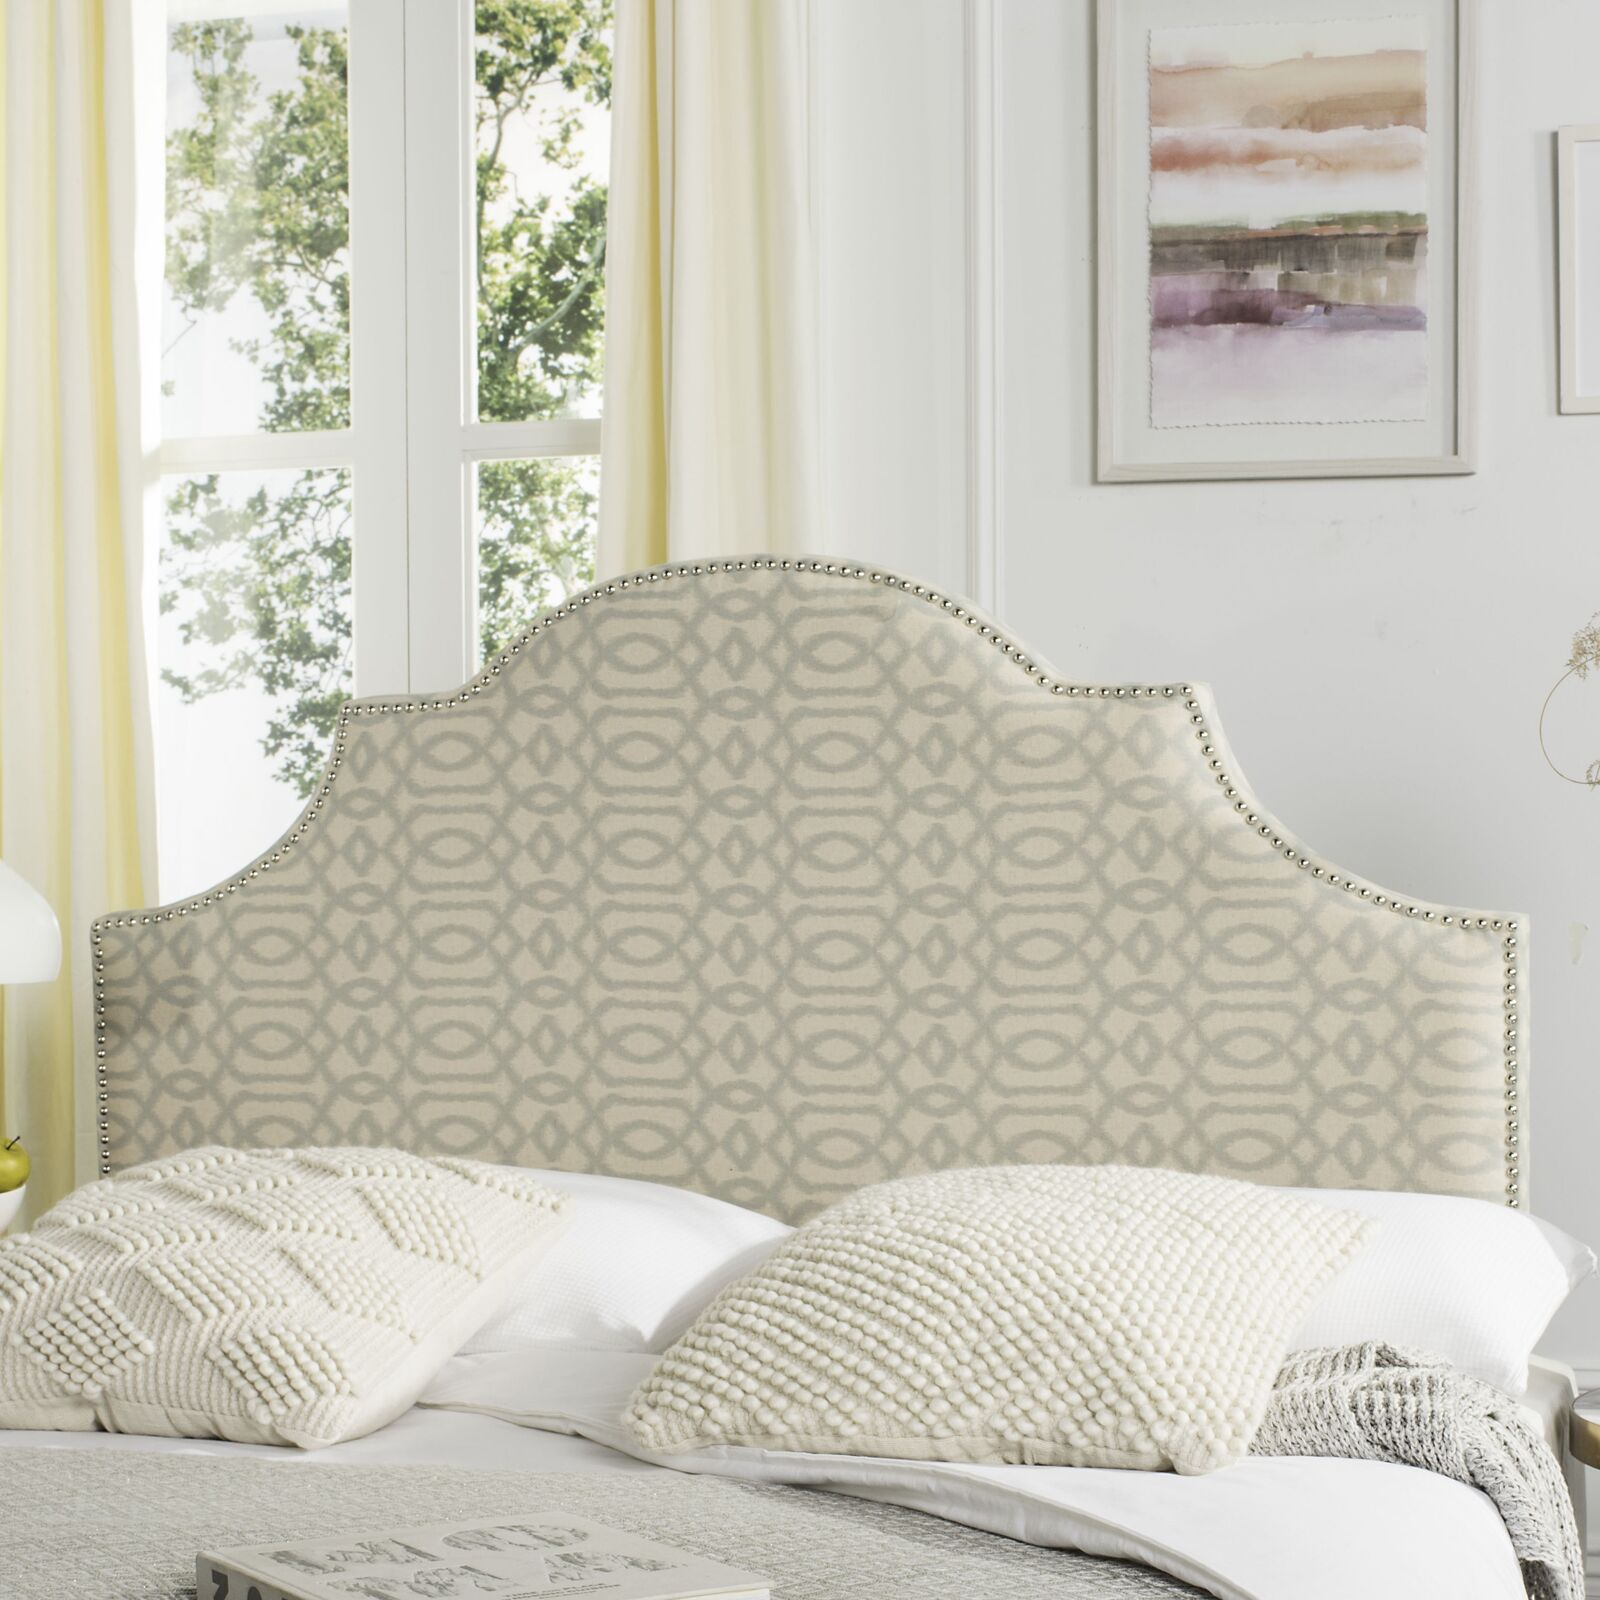 Caswell Upholstered Panel Headboard Nailhead Finish: Silver, Color: Wheat / Pale Blue, Size: Full